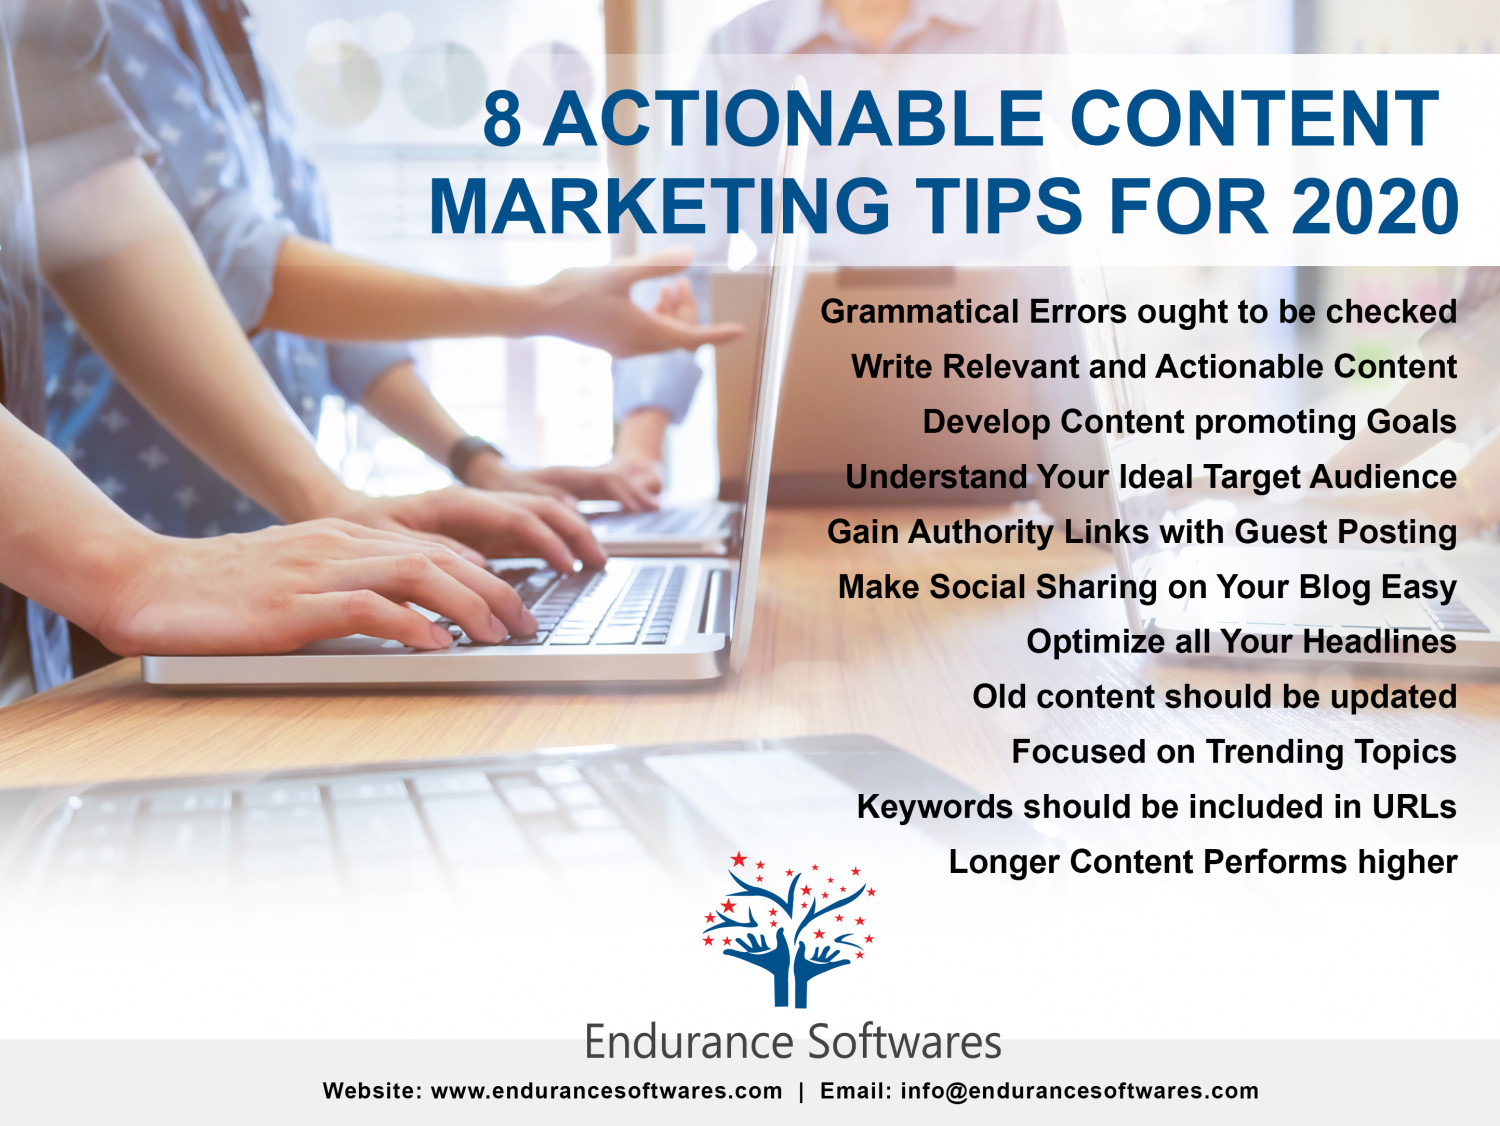 8 Actionable Content Marketing Tips for 2020 Infographic